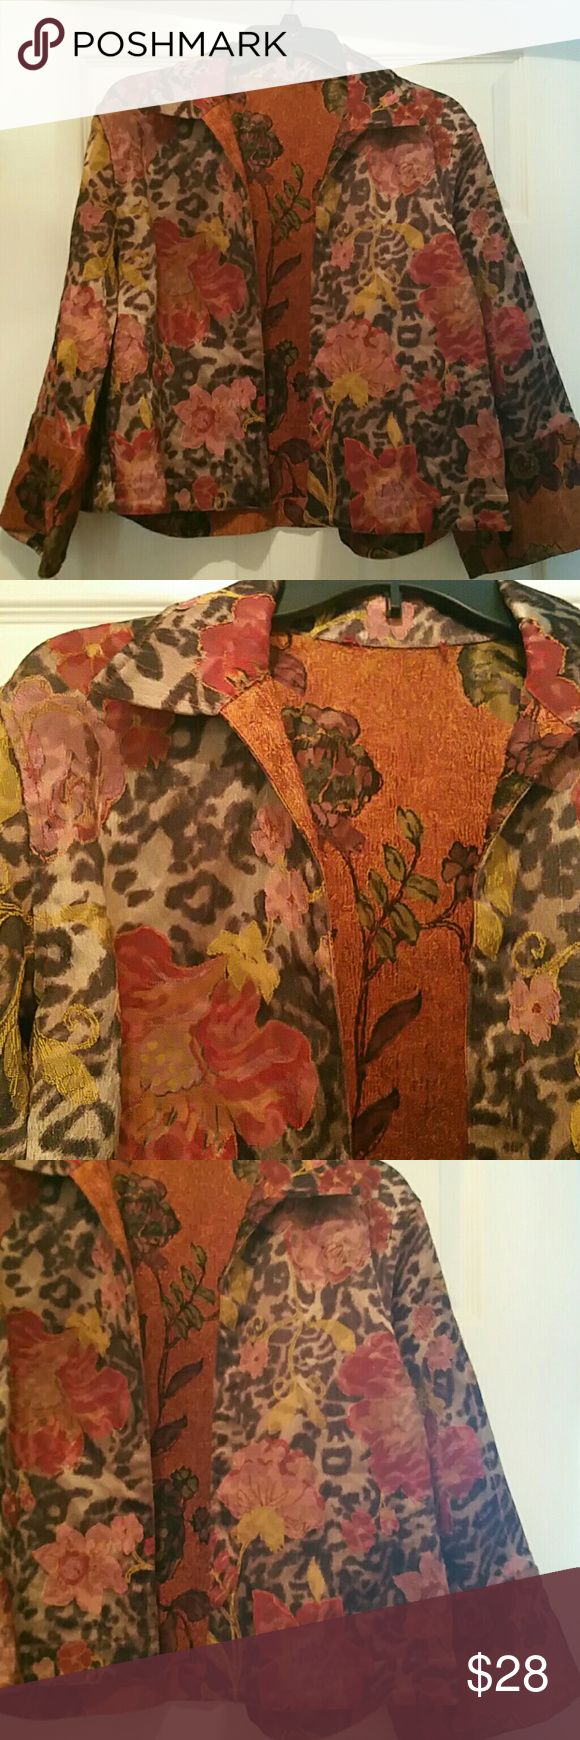 BOGO SALE! Raised Floral Chettah Blazer BUY AT REGULAR PRICE GET ONE FREE AT A LESSER PRICE! NO OFFERS OR BUNDLES WITH THIS SPECIAL.   EXCLUDES HAT COLLECTION AND VASACE ITEM.  Size: Medium  No Lining  Raised Floral Design with Cheetah Background Print.  Colors: Burgundy, Mauve, Brown and Tan Jackets & Coats Blazers